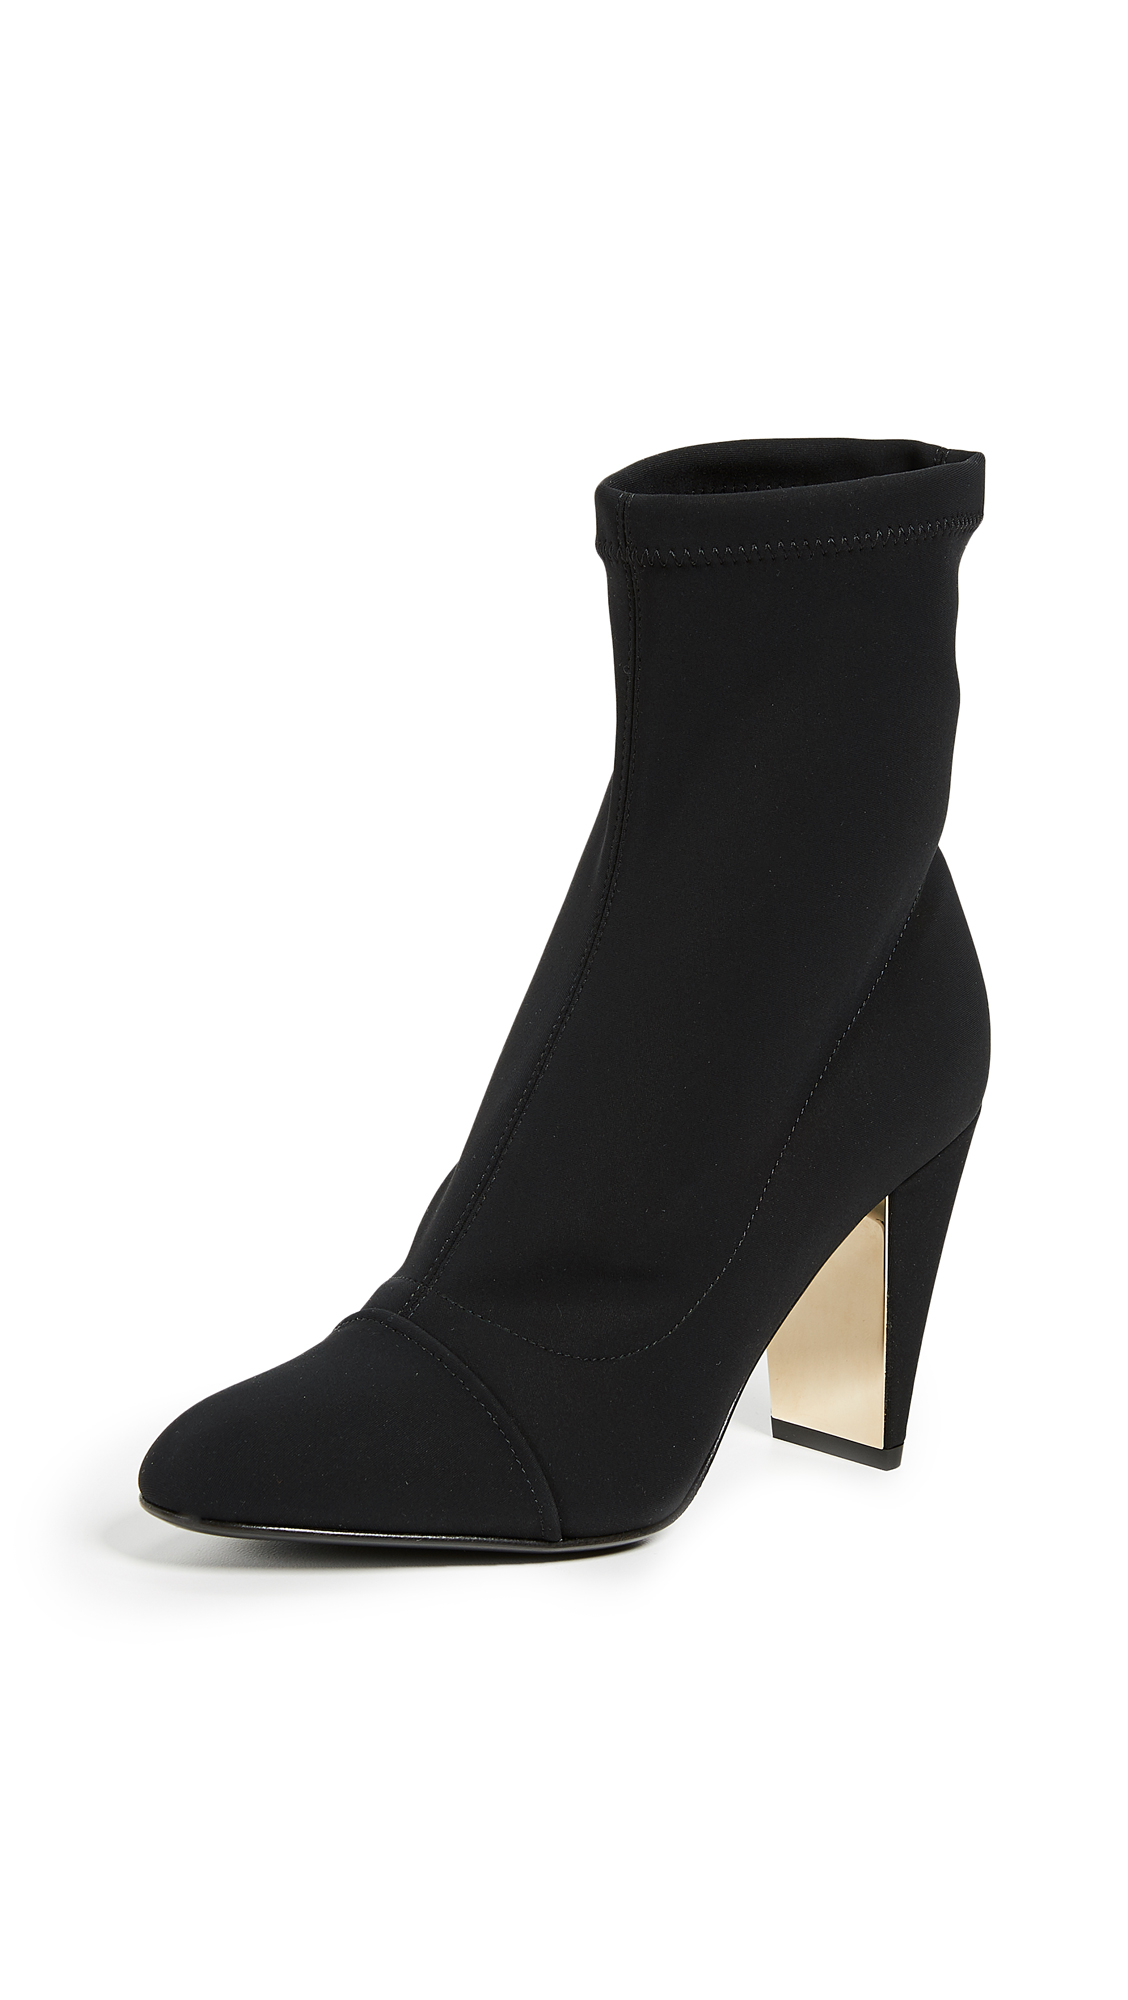 Marion Parke Devon Ankle Booties - Black